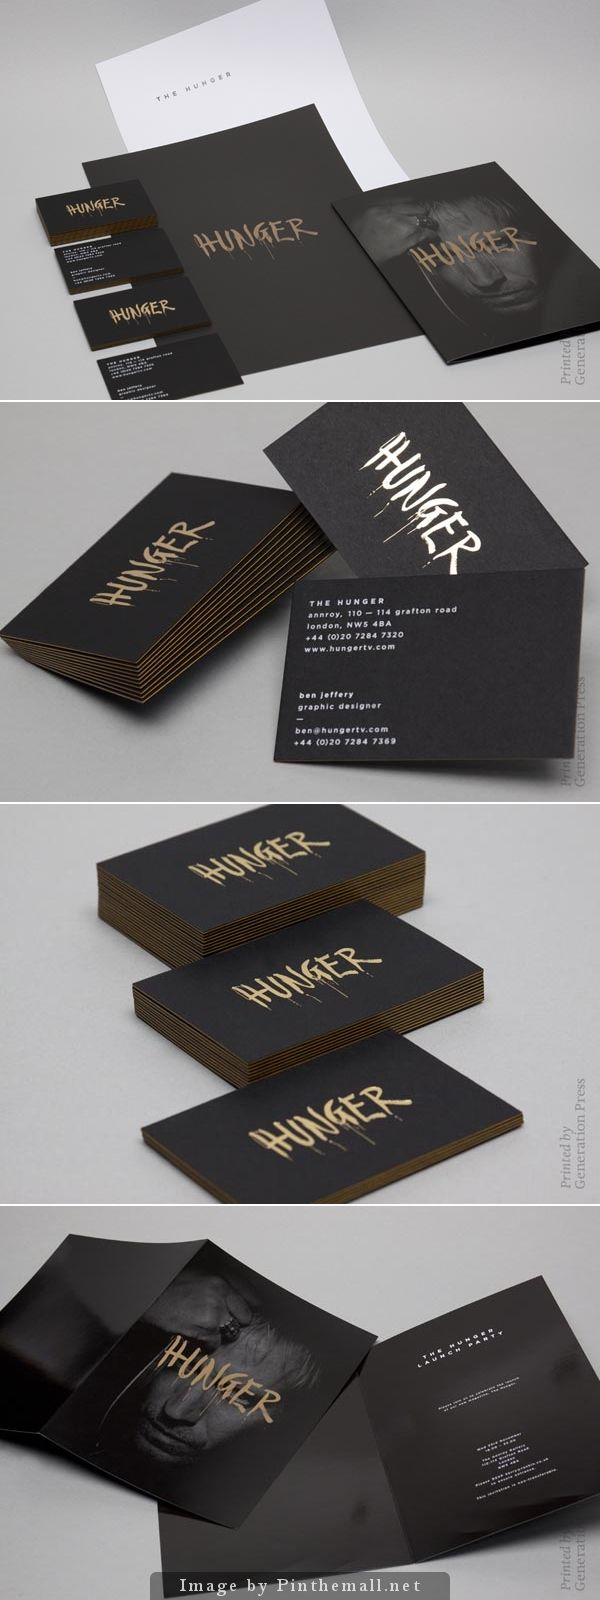 234 best Monogram designs images on Pinterest | Corporate identity ...